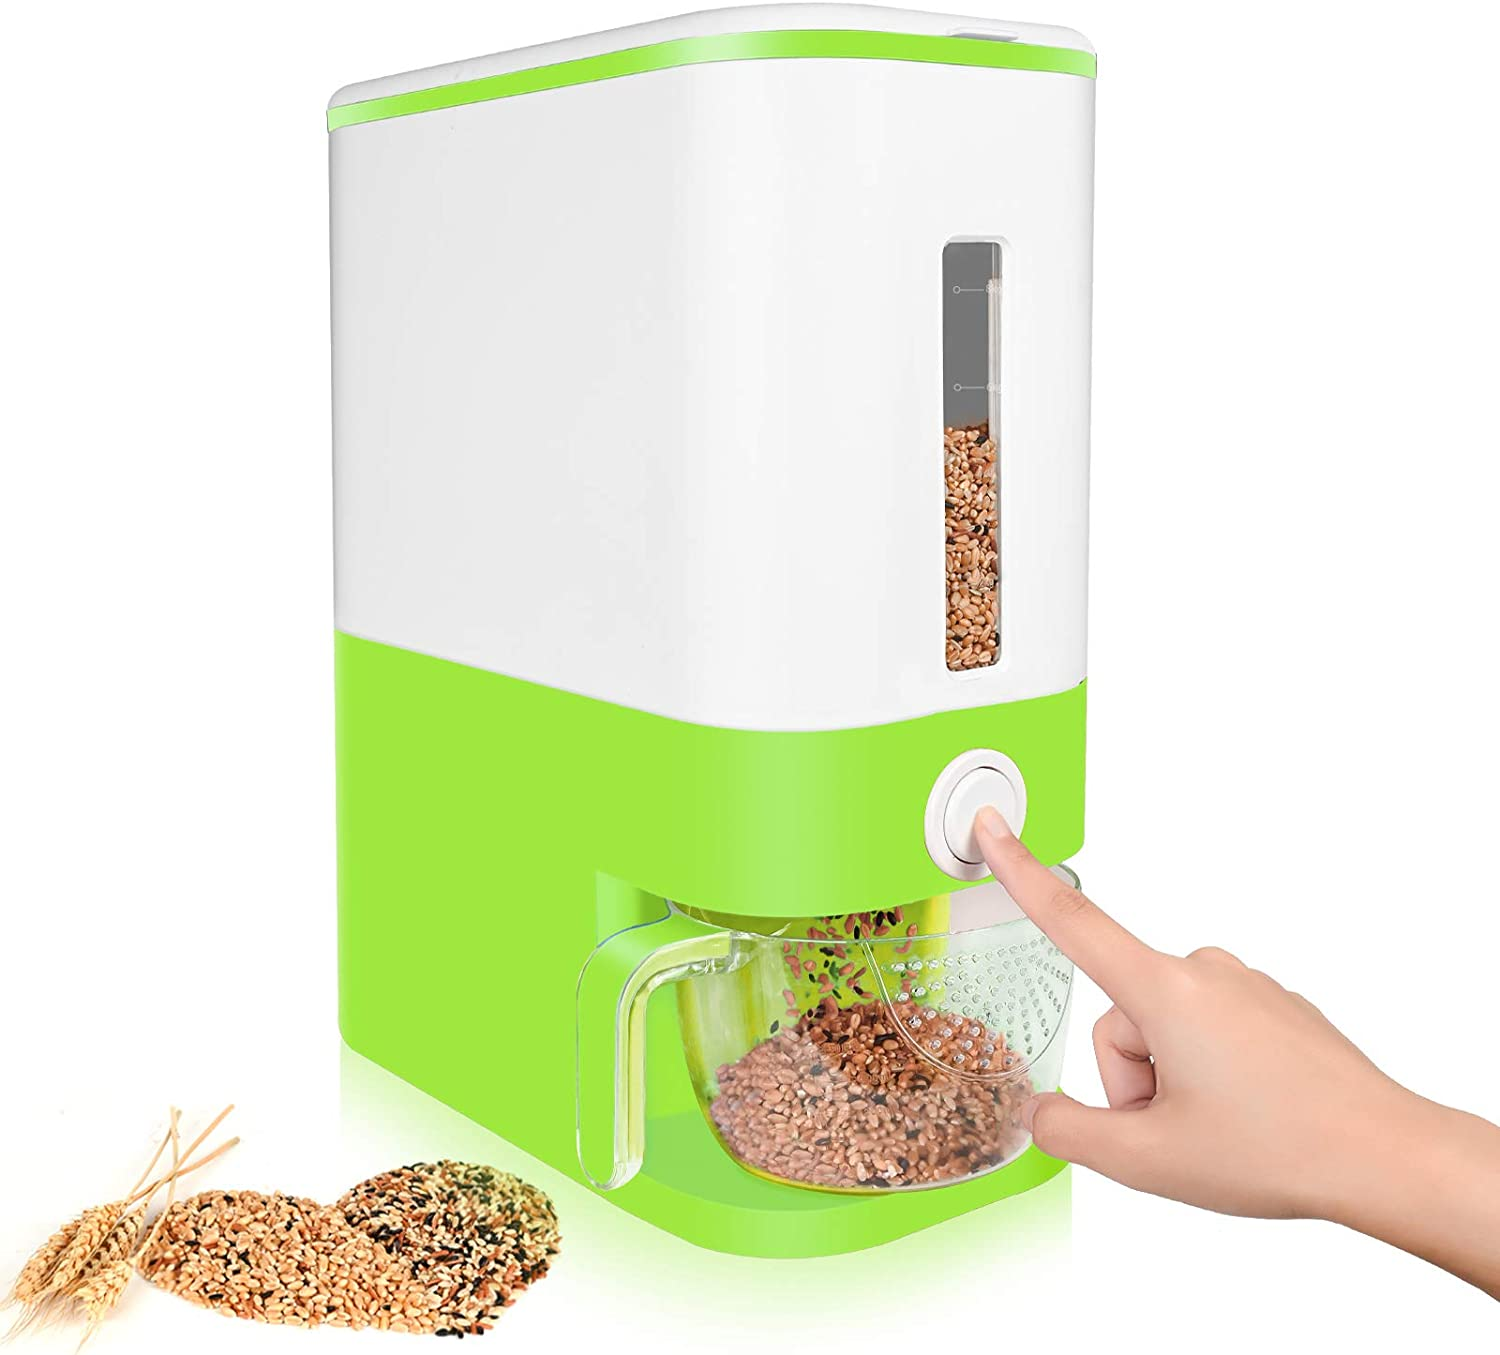 PANGOOD Large Airtight Food Storage Containers, 22.5lbs - Rice Dispenser w/Clear Checking Window - Dry Food Dispenser w/One-Button Access (Green) - Storage Bin w/Measuring Cup - Cereal Dispenser